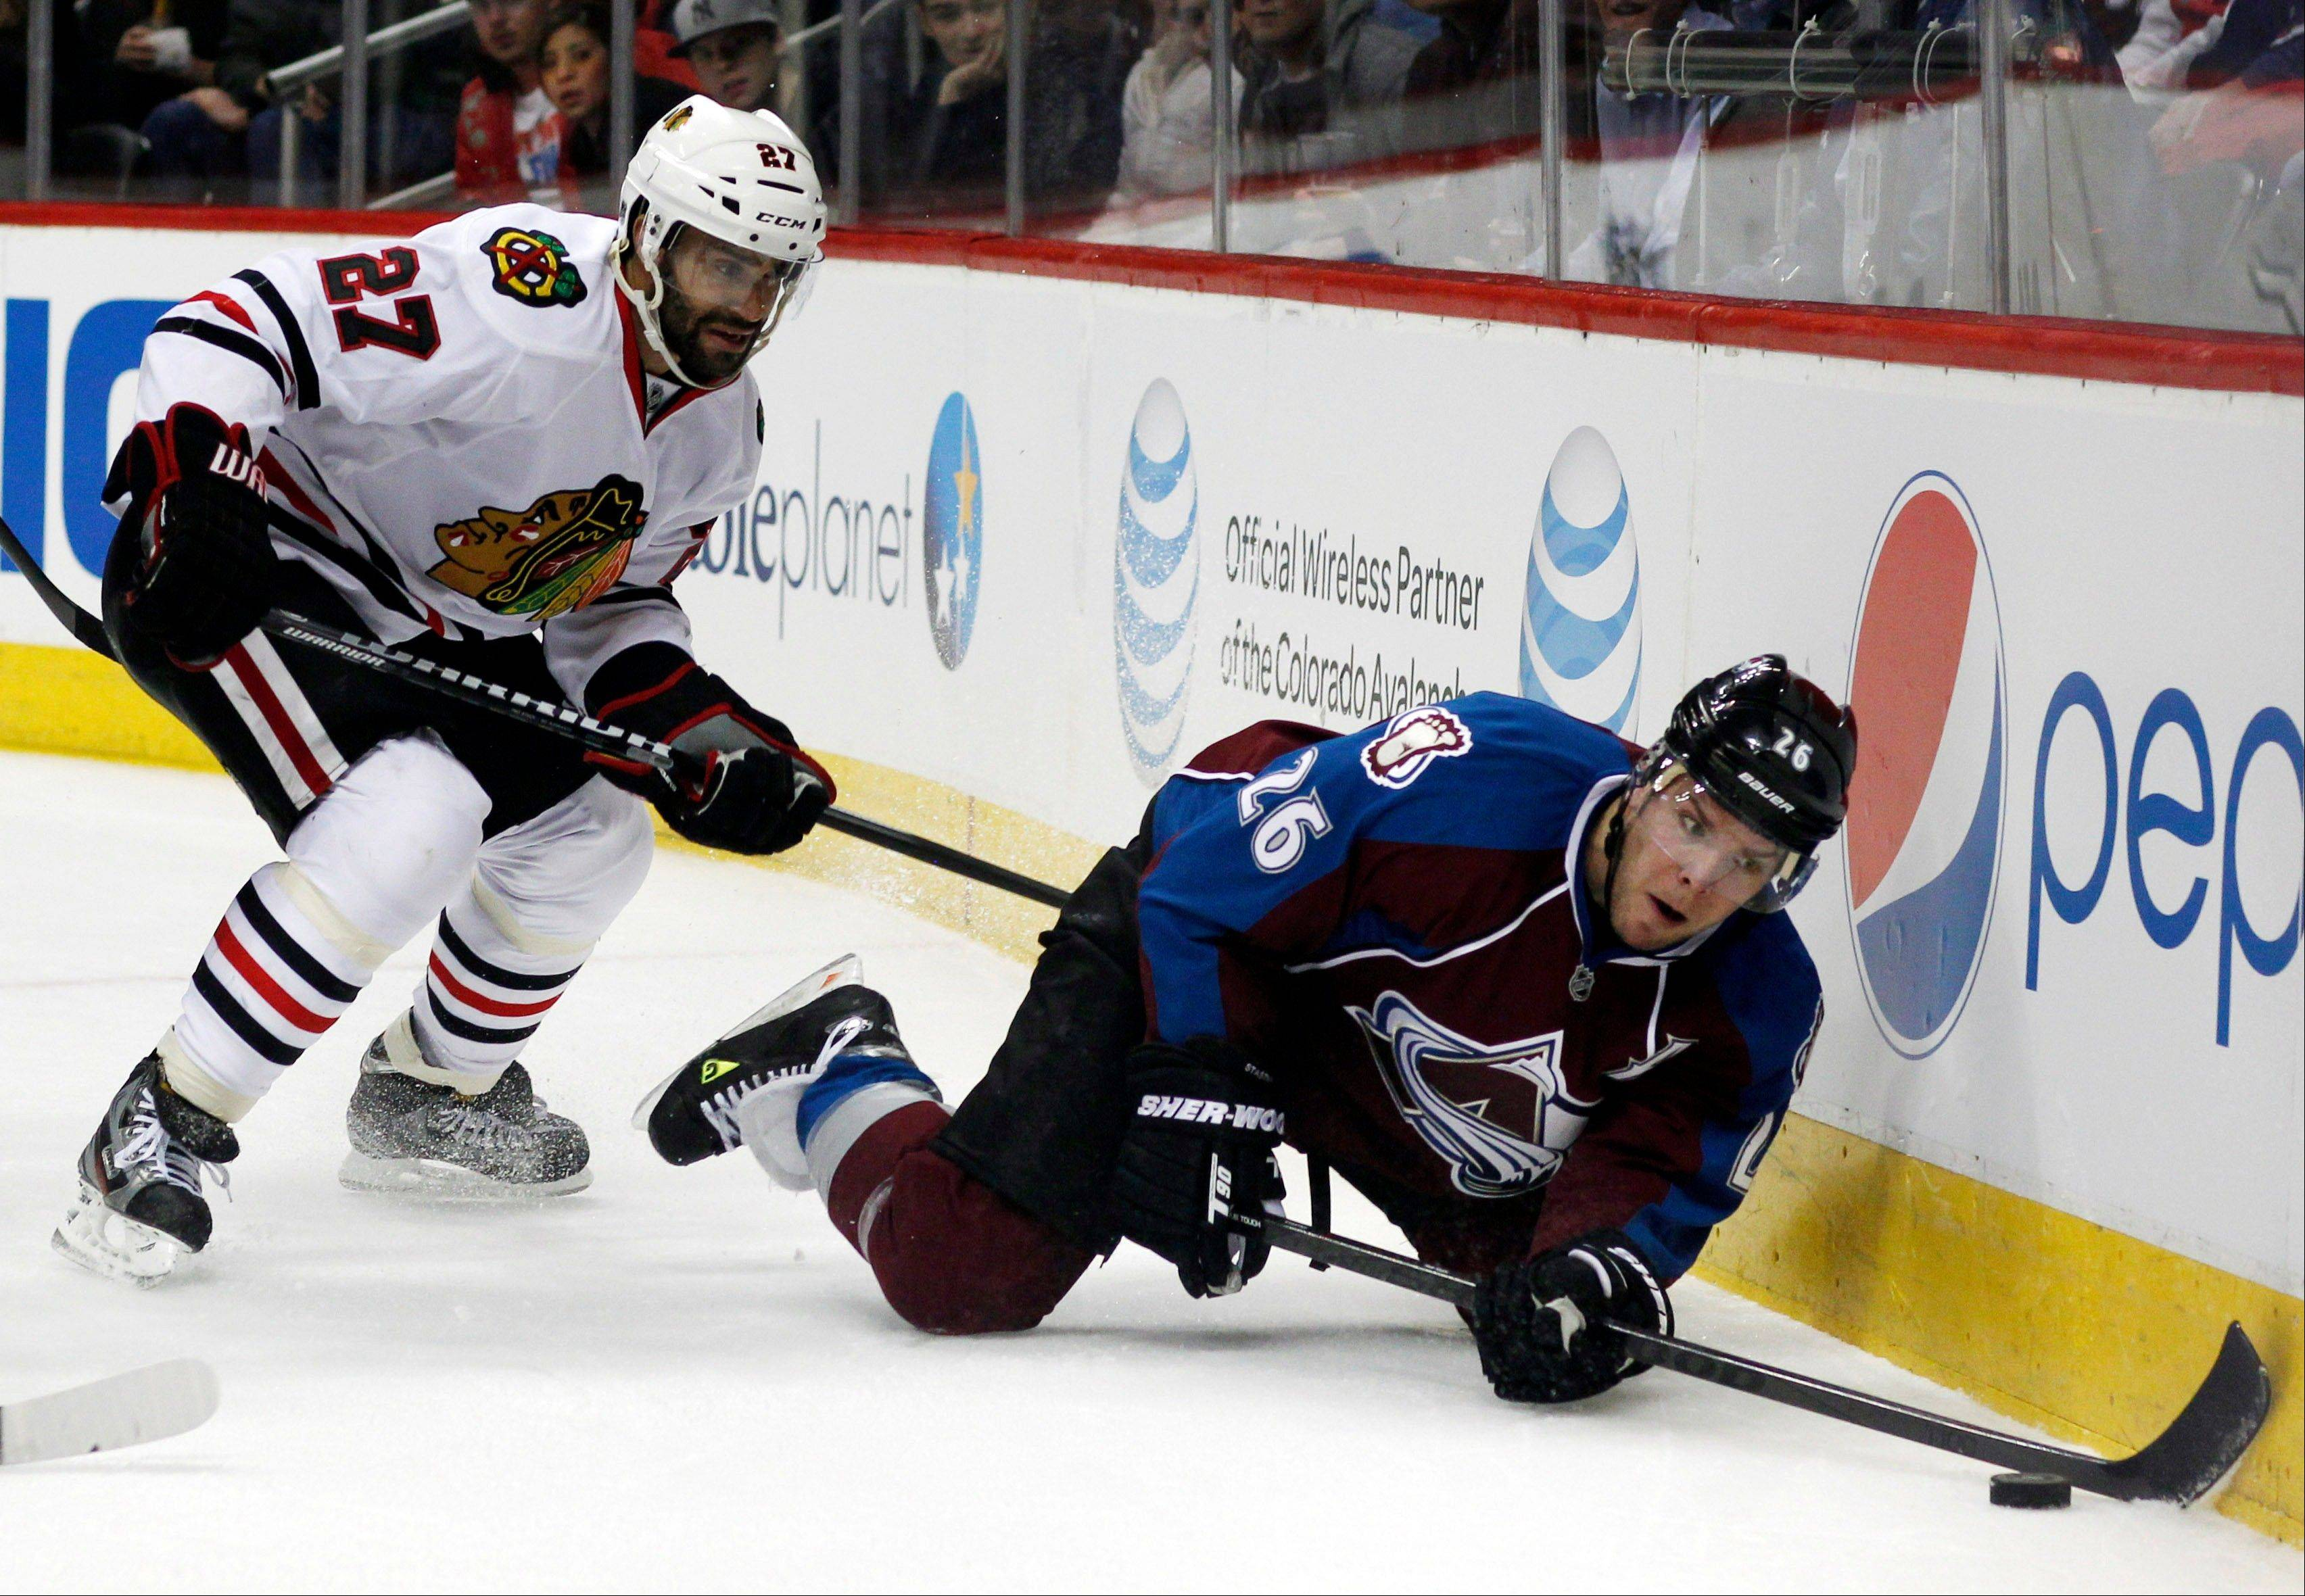 Colorado Avalanche center Paul Stastny, right, reaches out for a loose puck as Chicago Blackhawks defenseman Johnny Oduya covers in the first period.